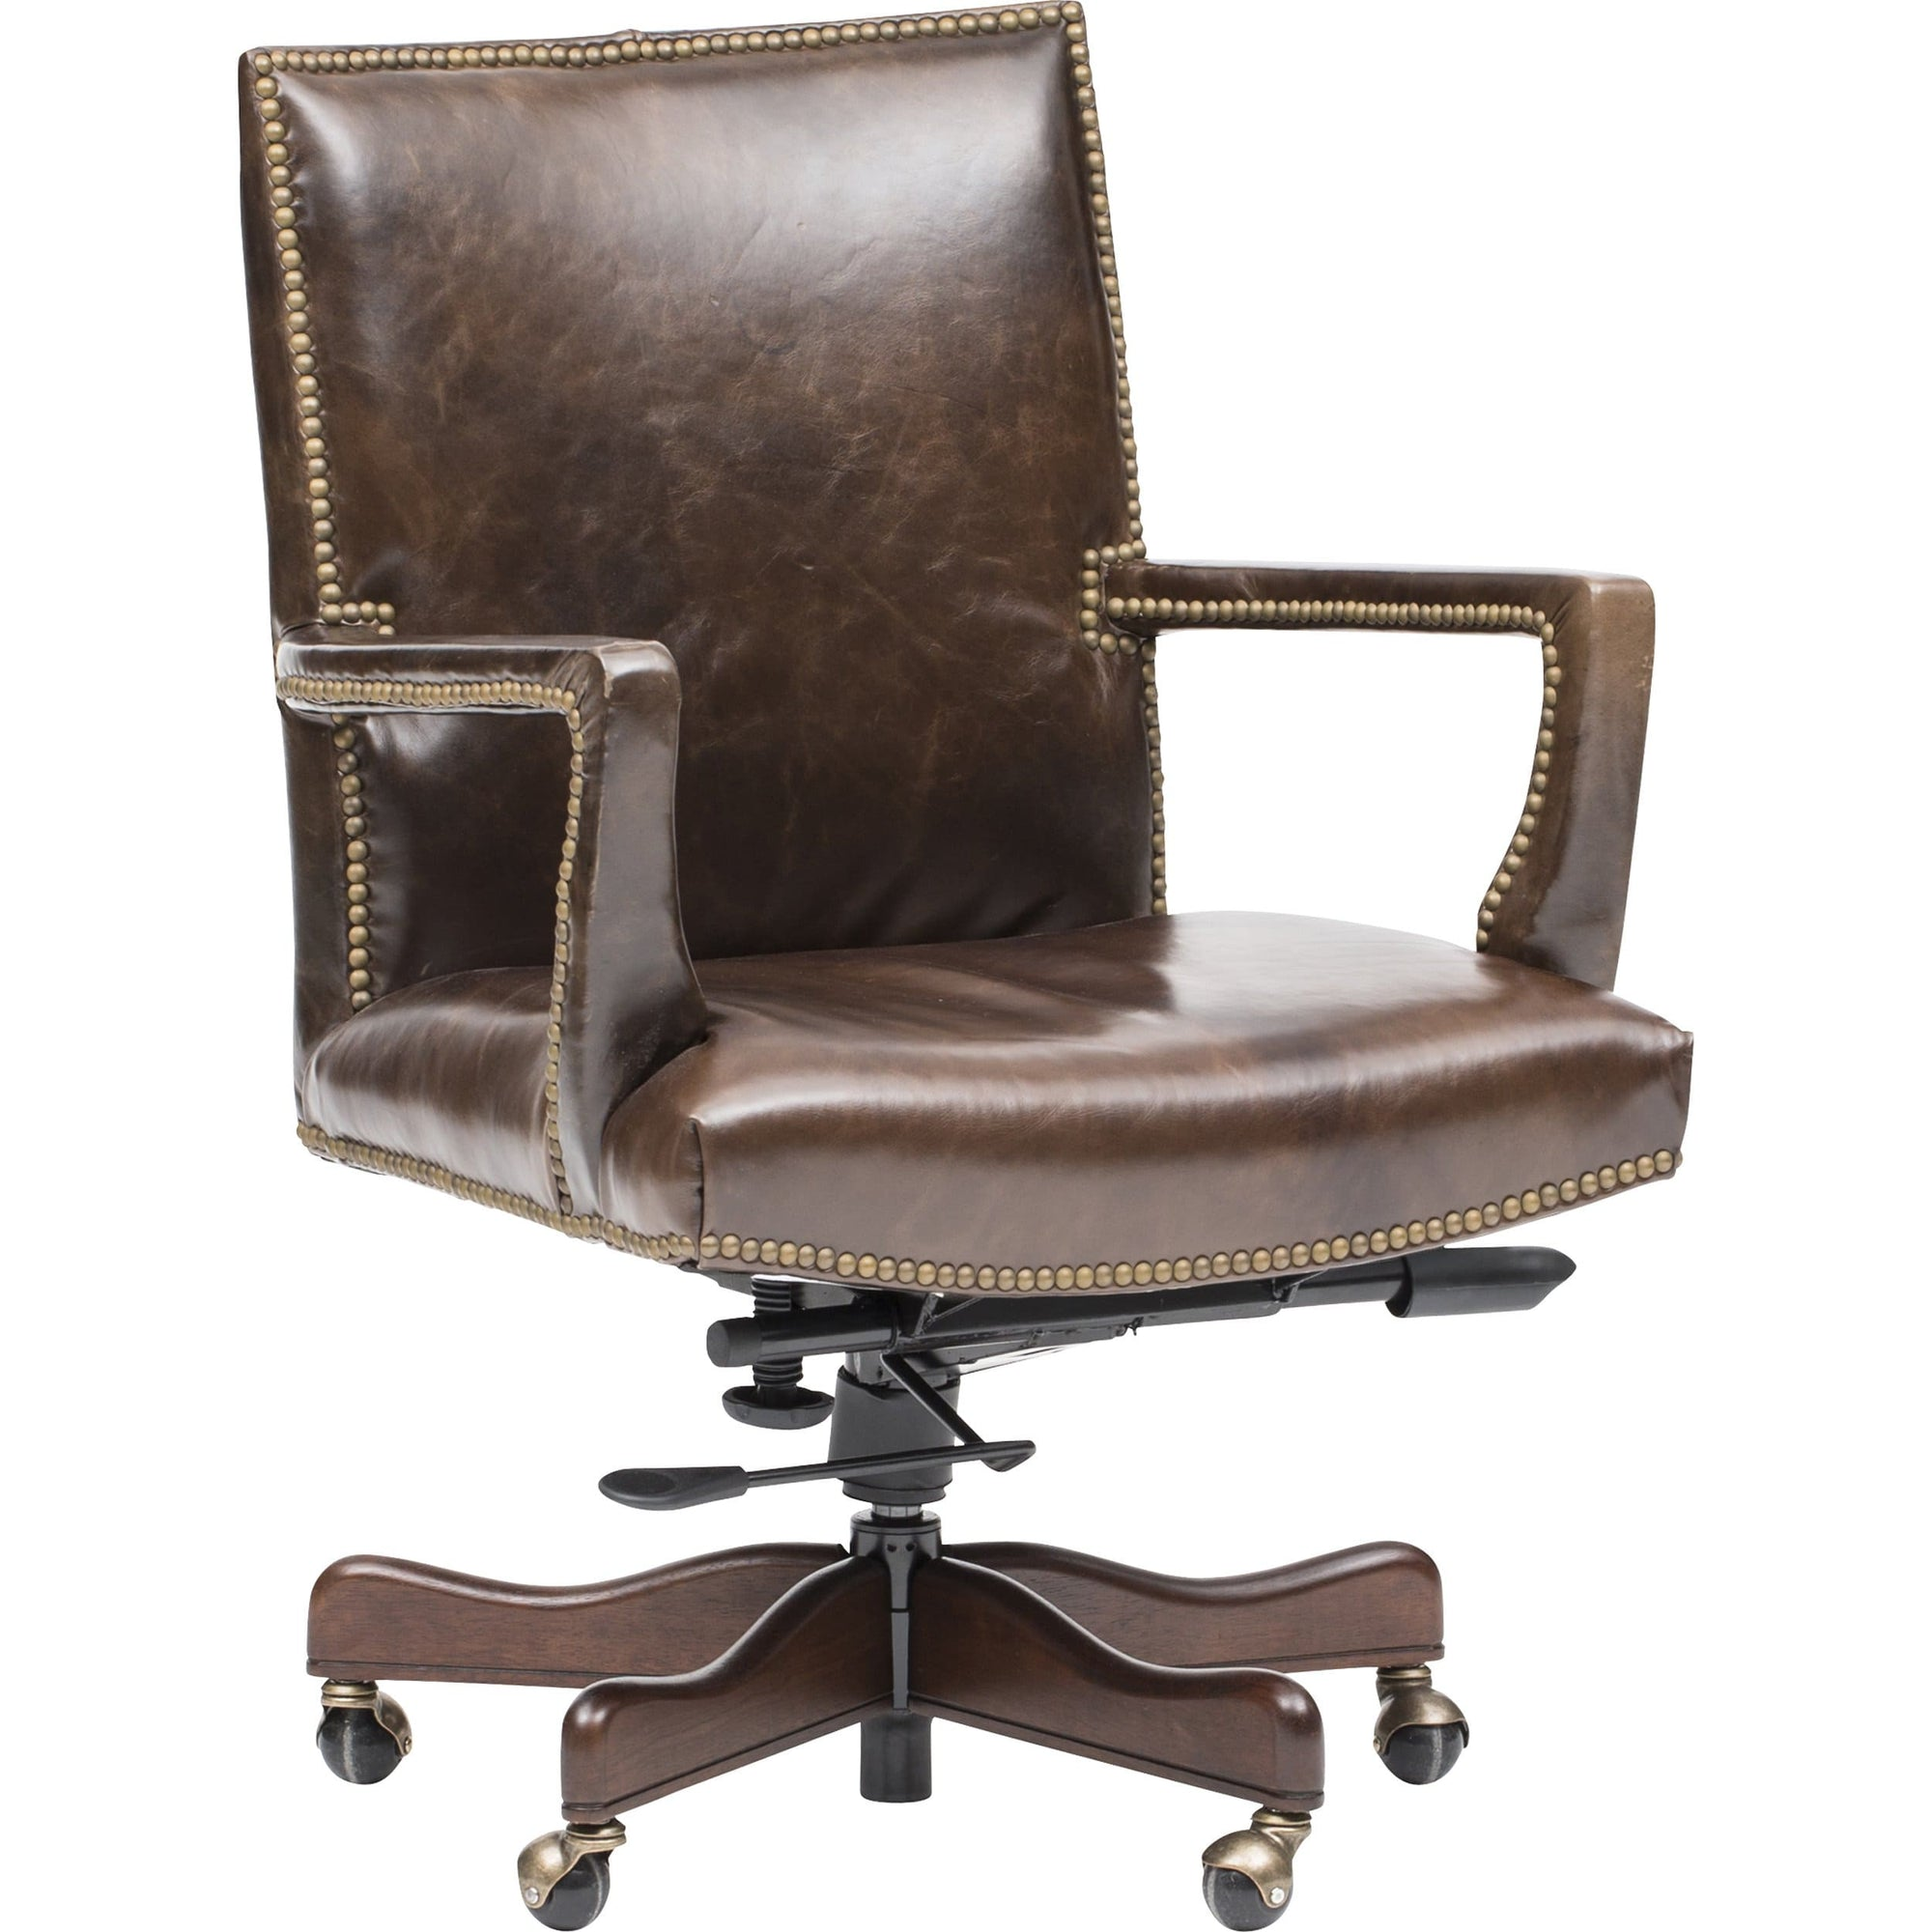 Miraculous Frank Executive Leather Office Chair Interior Design Ideas Clesiryabchikinfo